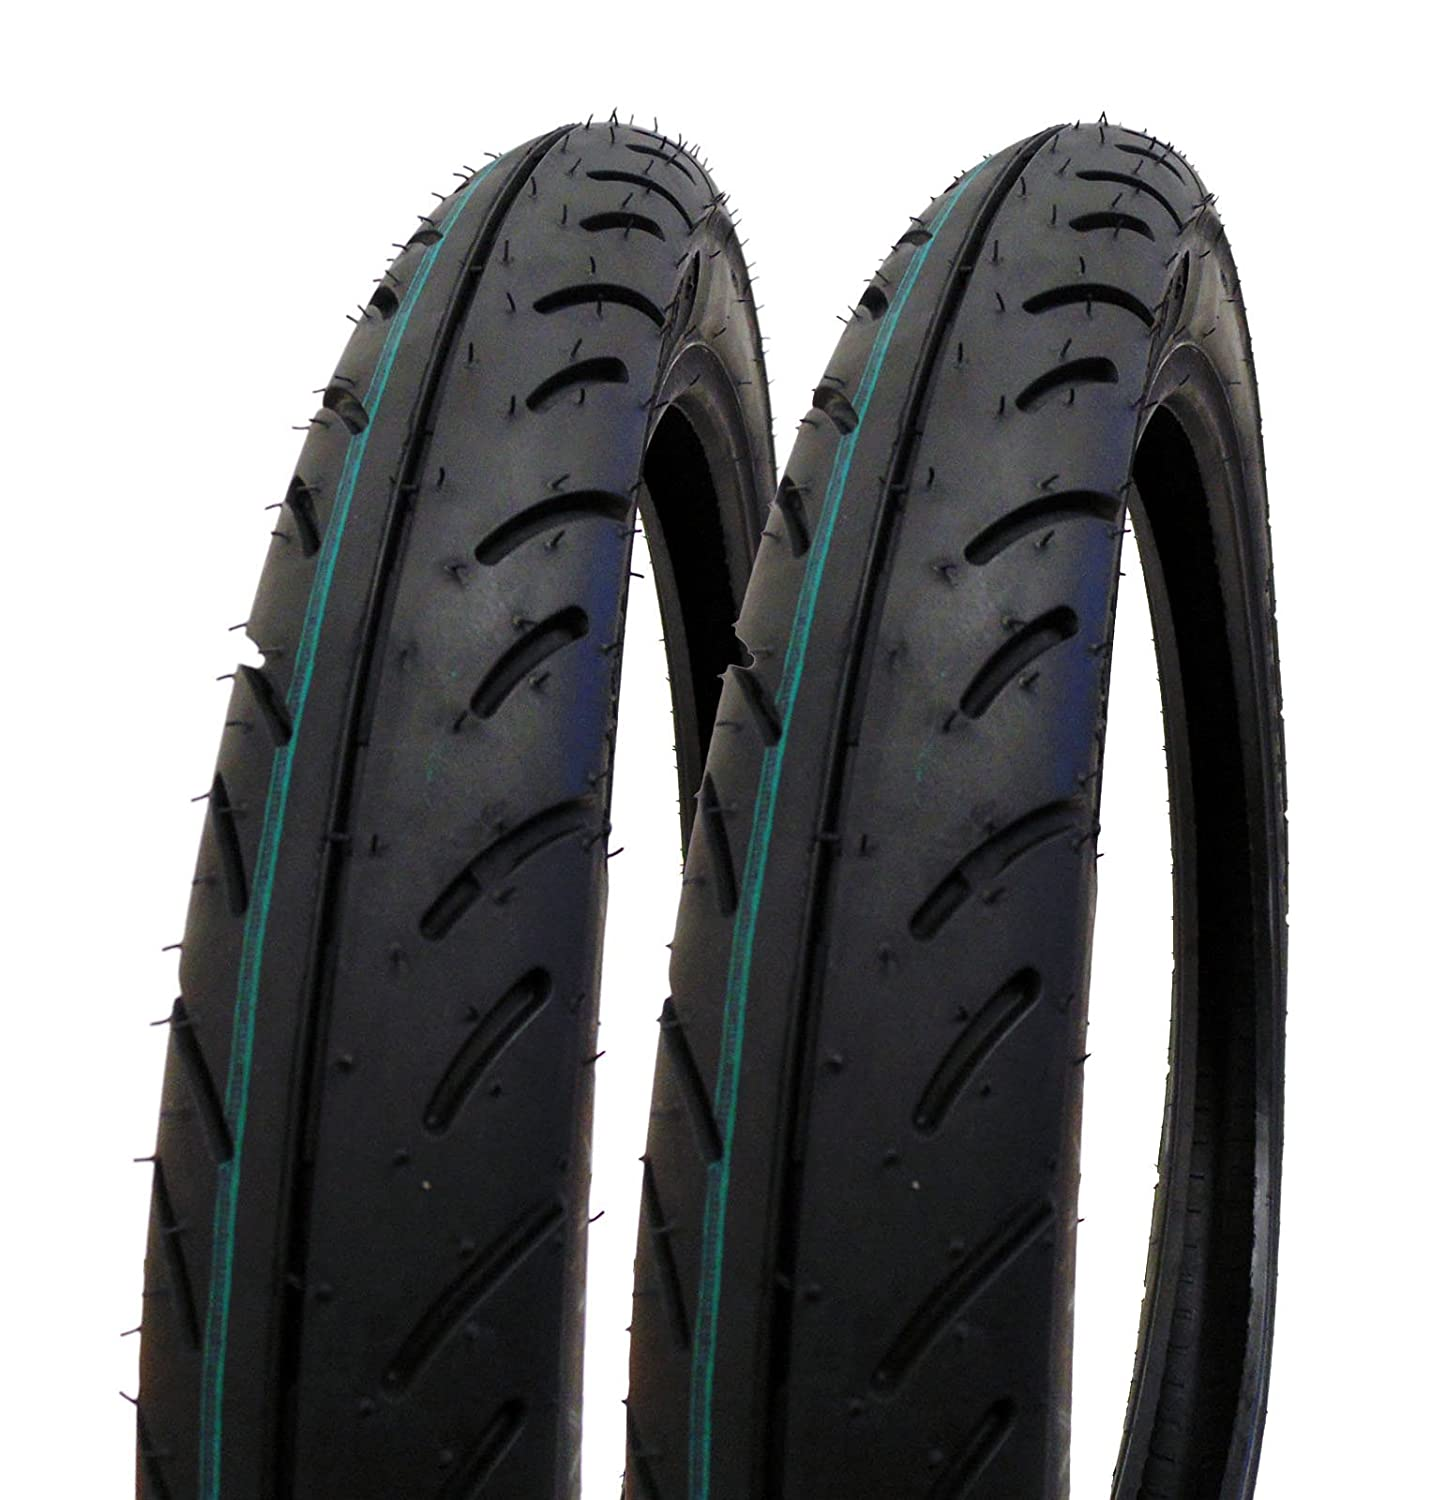 SET OF TWO: Tire 2.50 - 16 (P83) Front/Rear Motorcycle Sport Street Performance Tread MMG 2_50-16